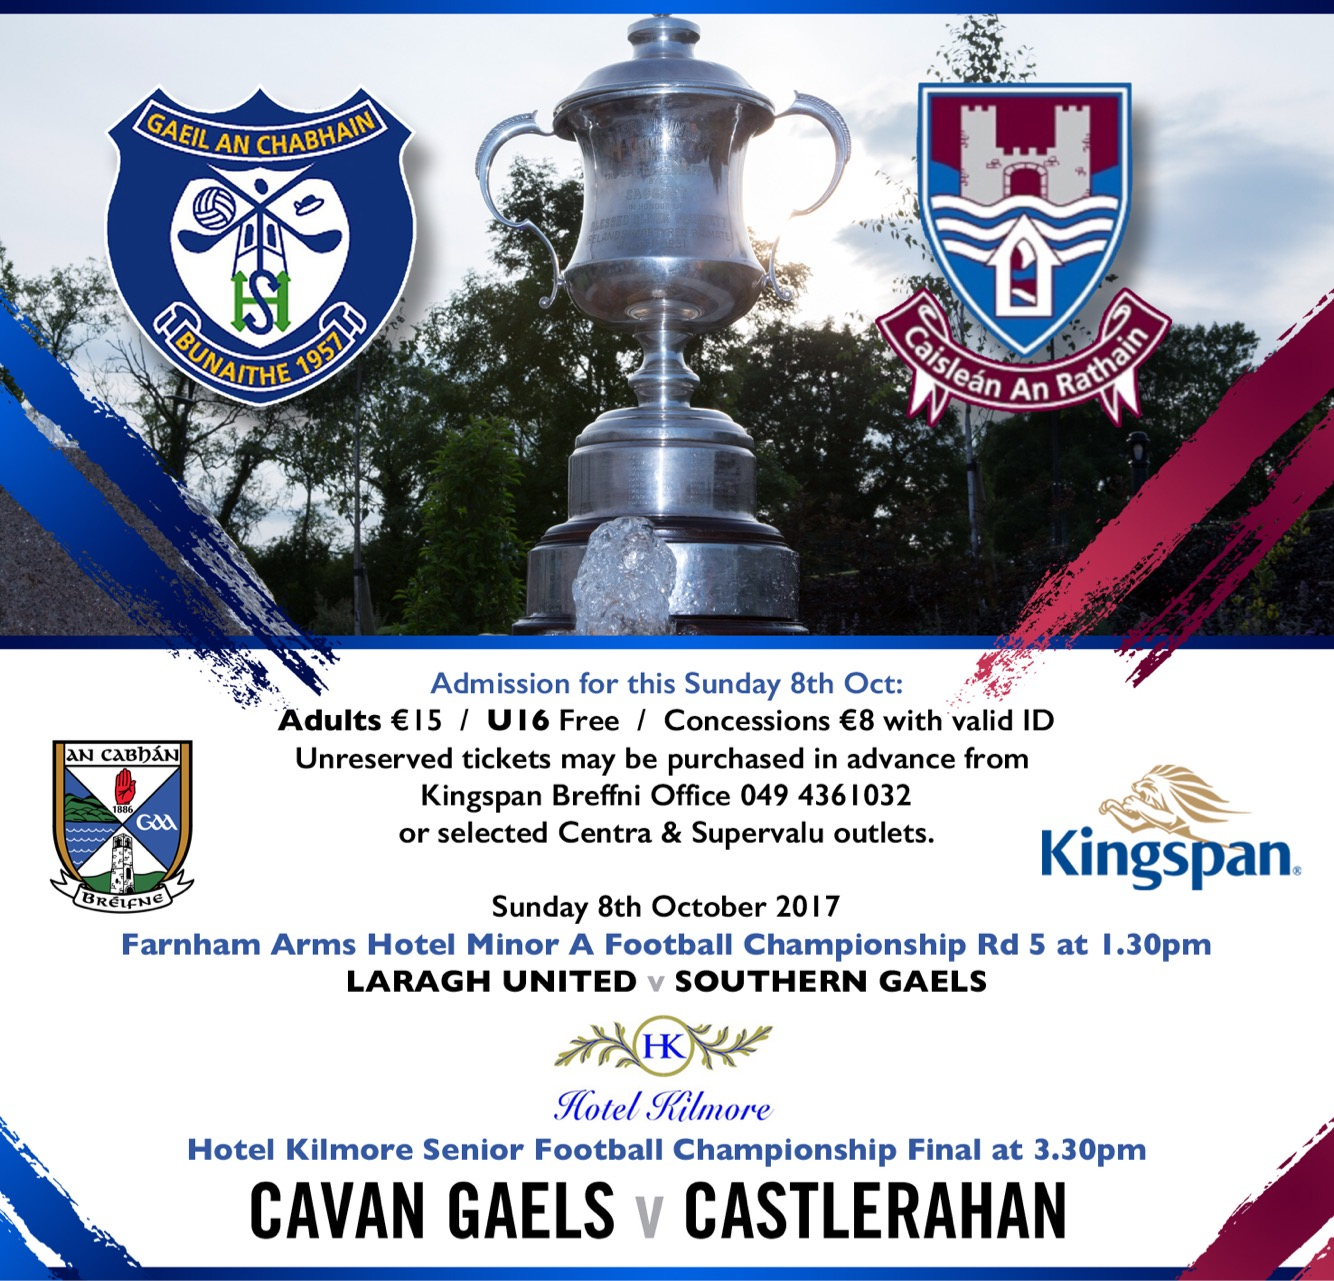 Senior Football Championship Final – Ticket Information